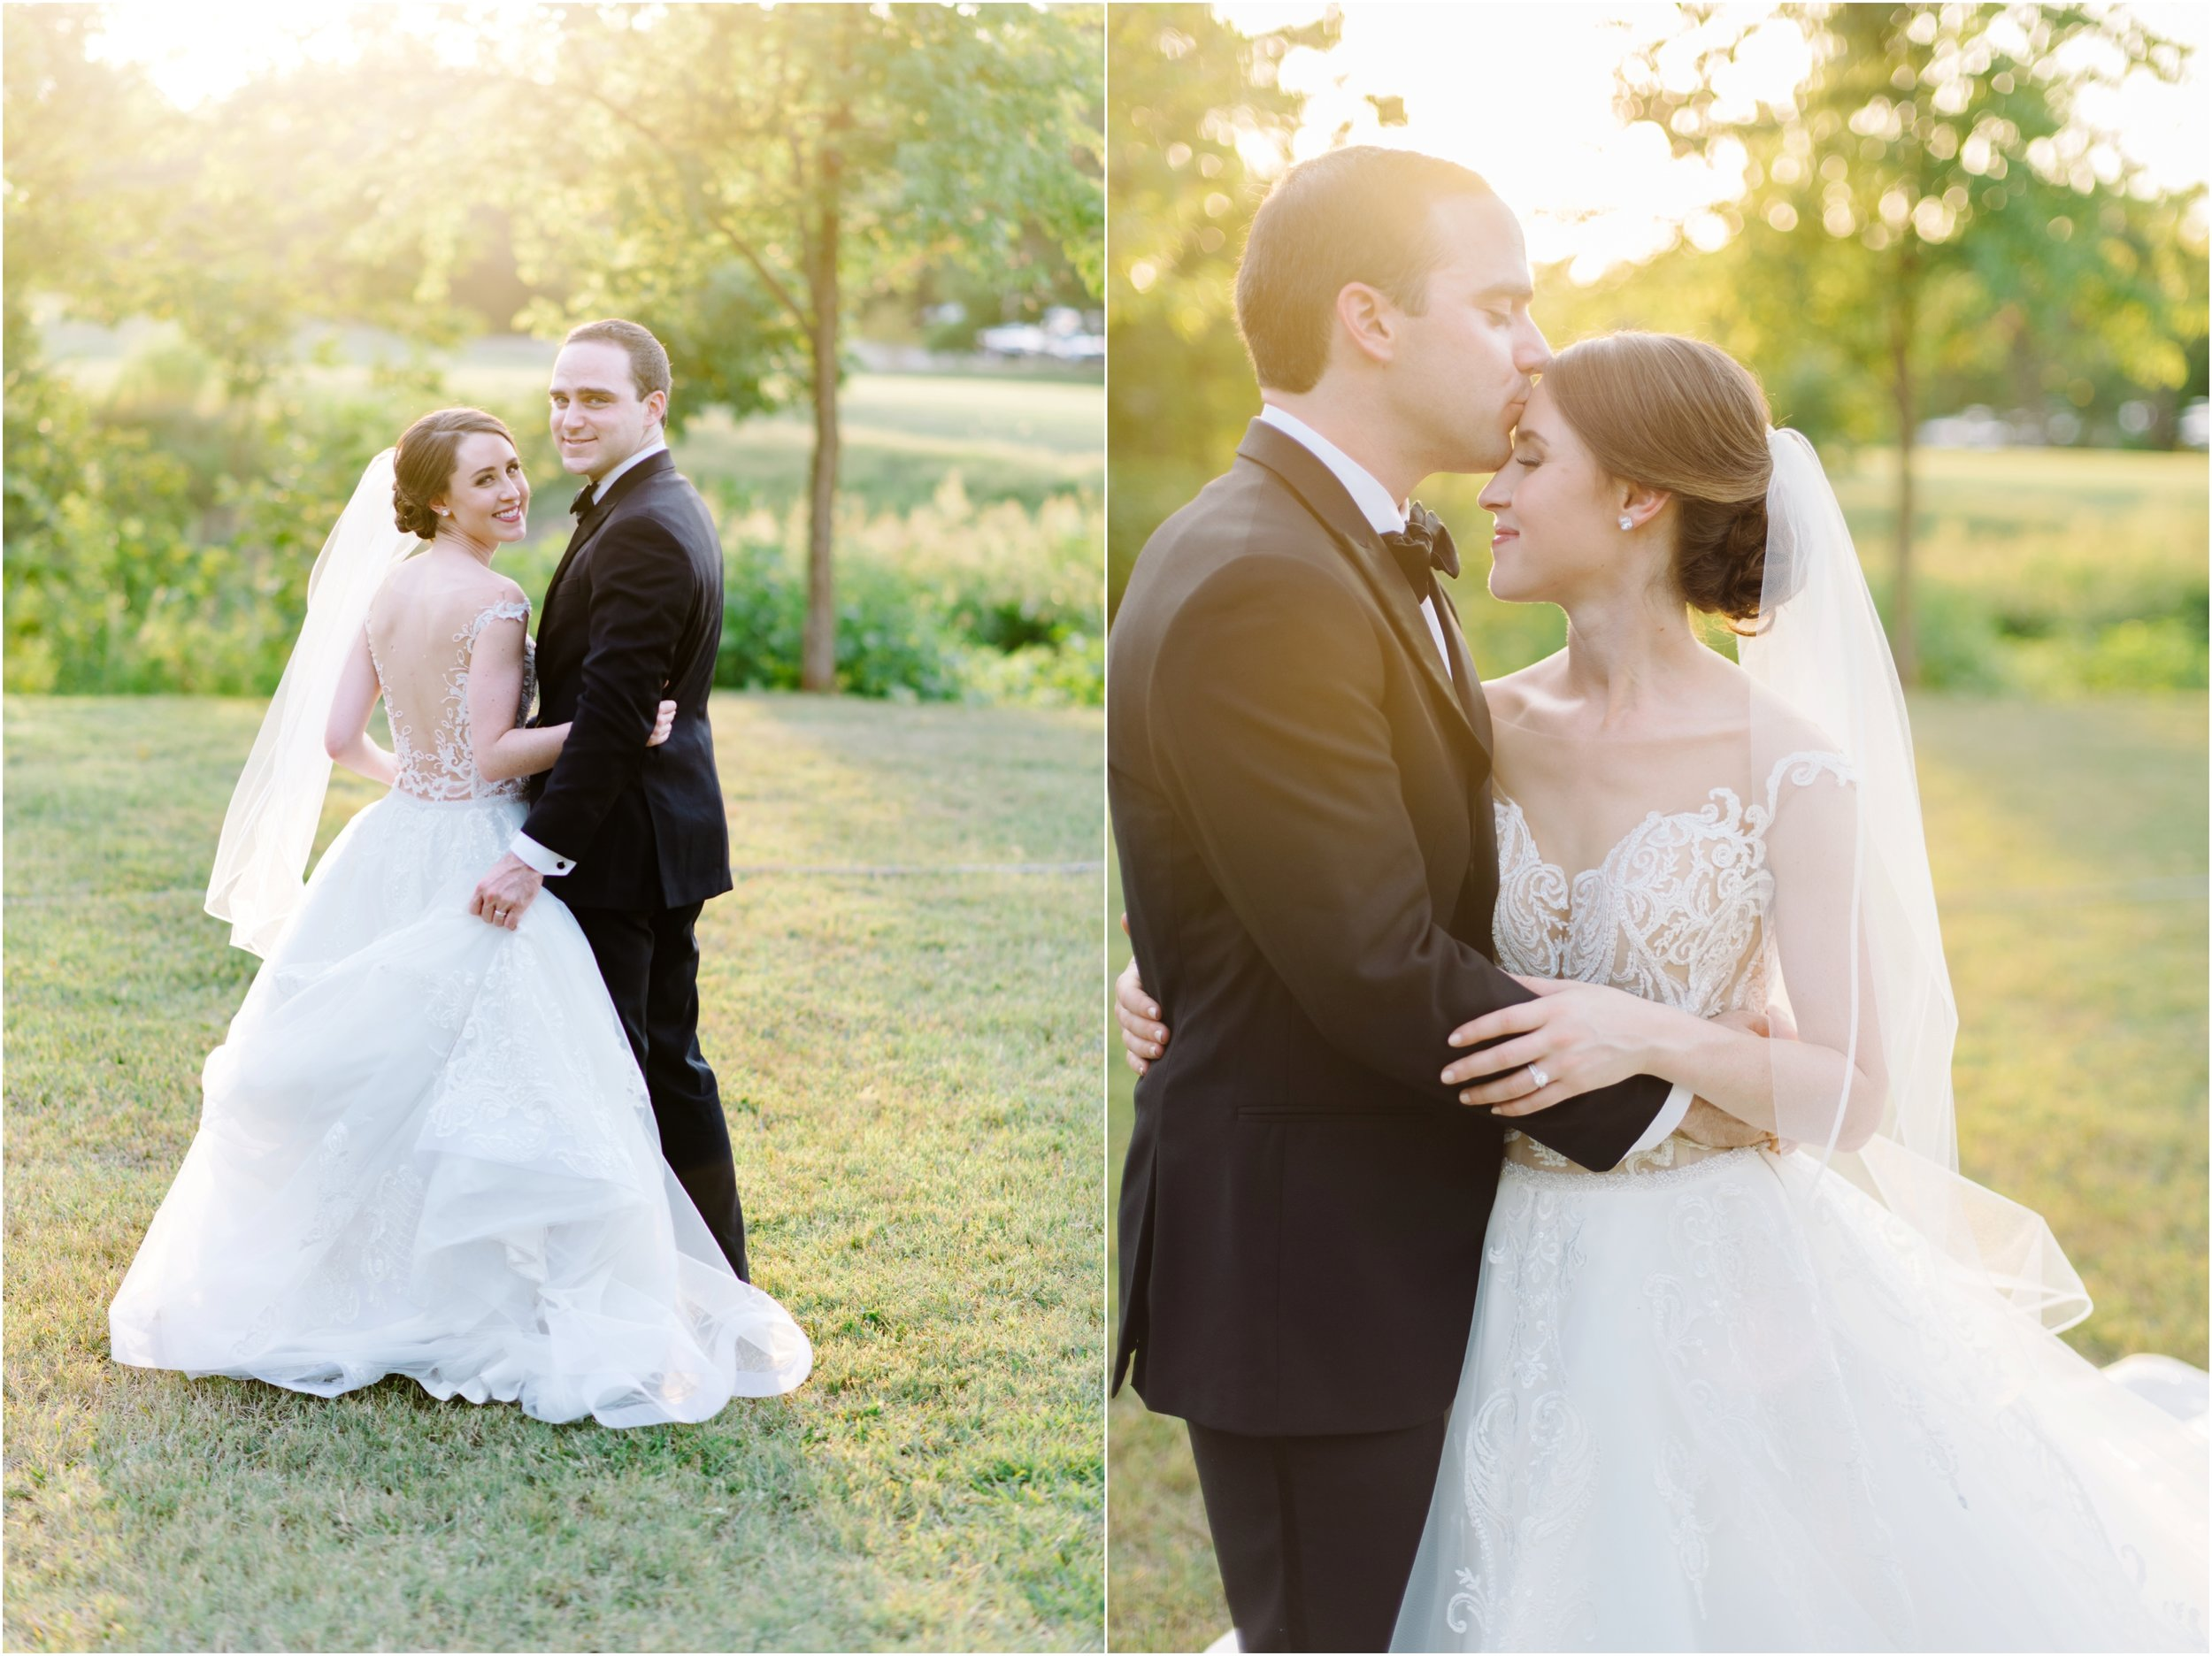 dallasweddingphotographer_fortworthweddingphotographer_texasweddingphotographer_mattandjulieweddings_whiterocklakewedding_KayleighClay_0041.jpg